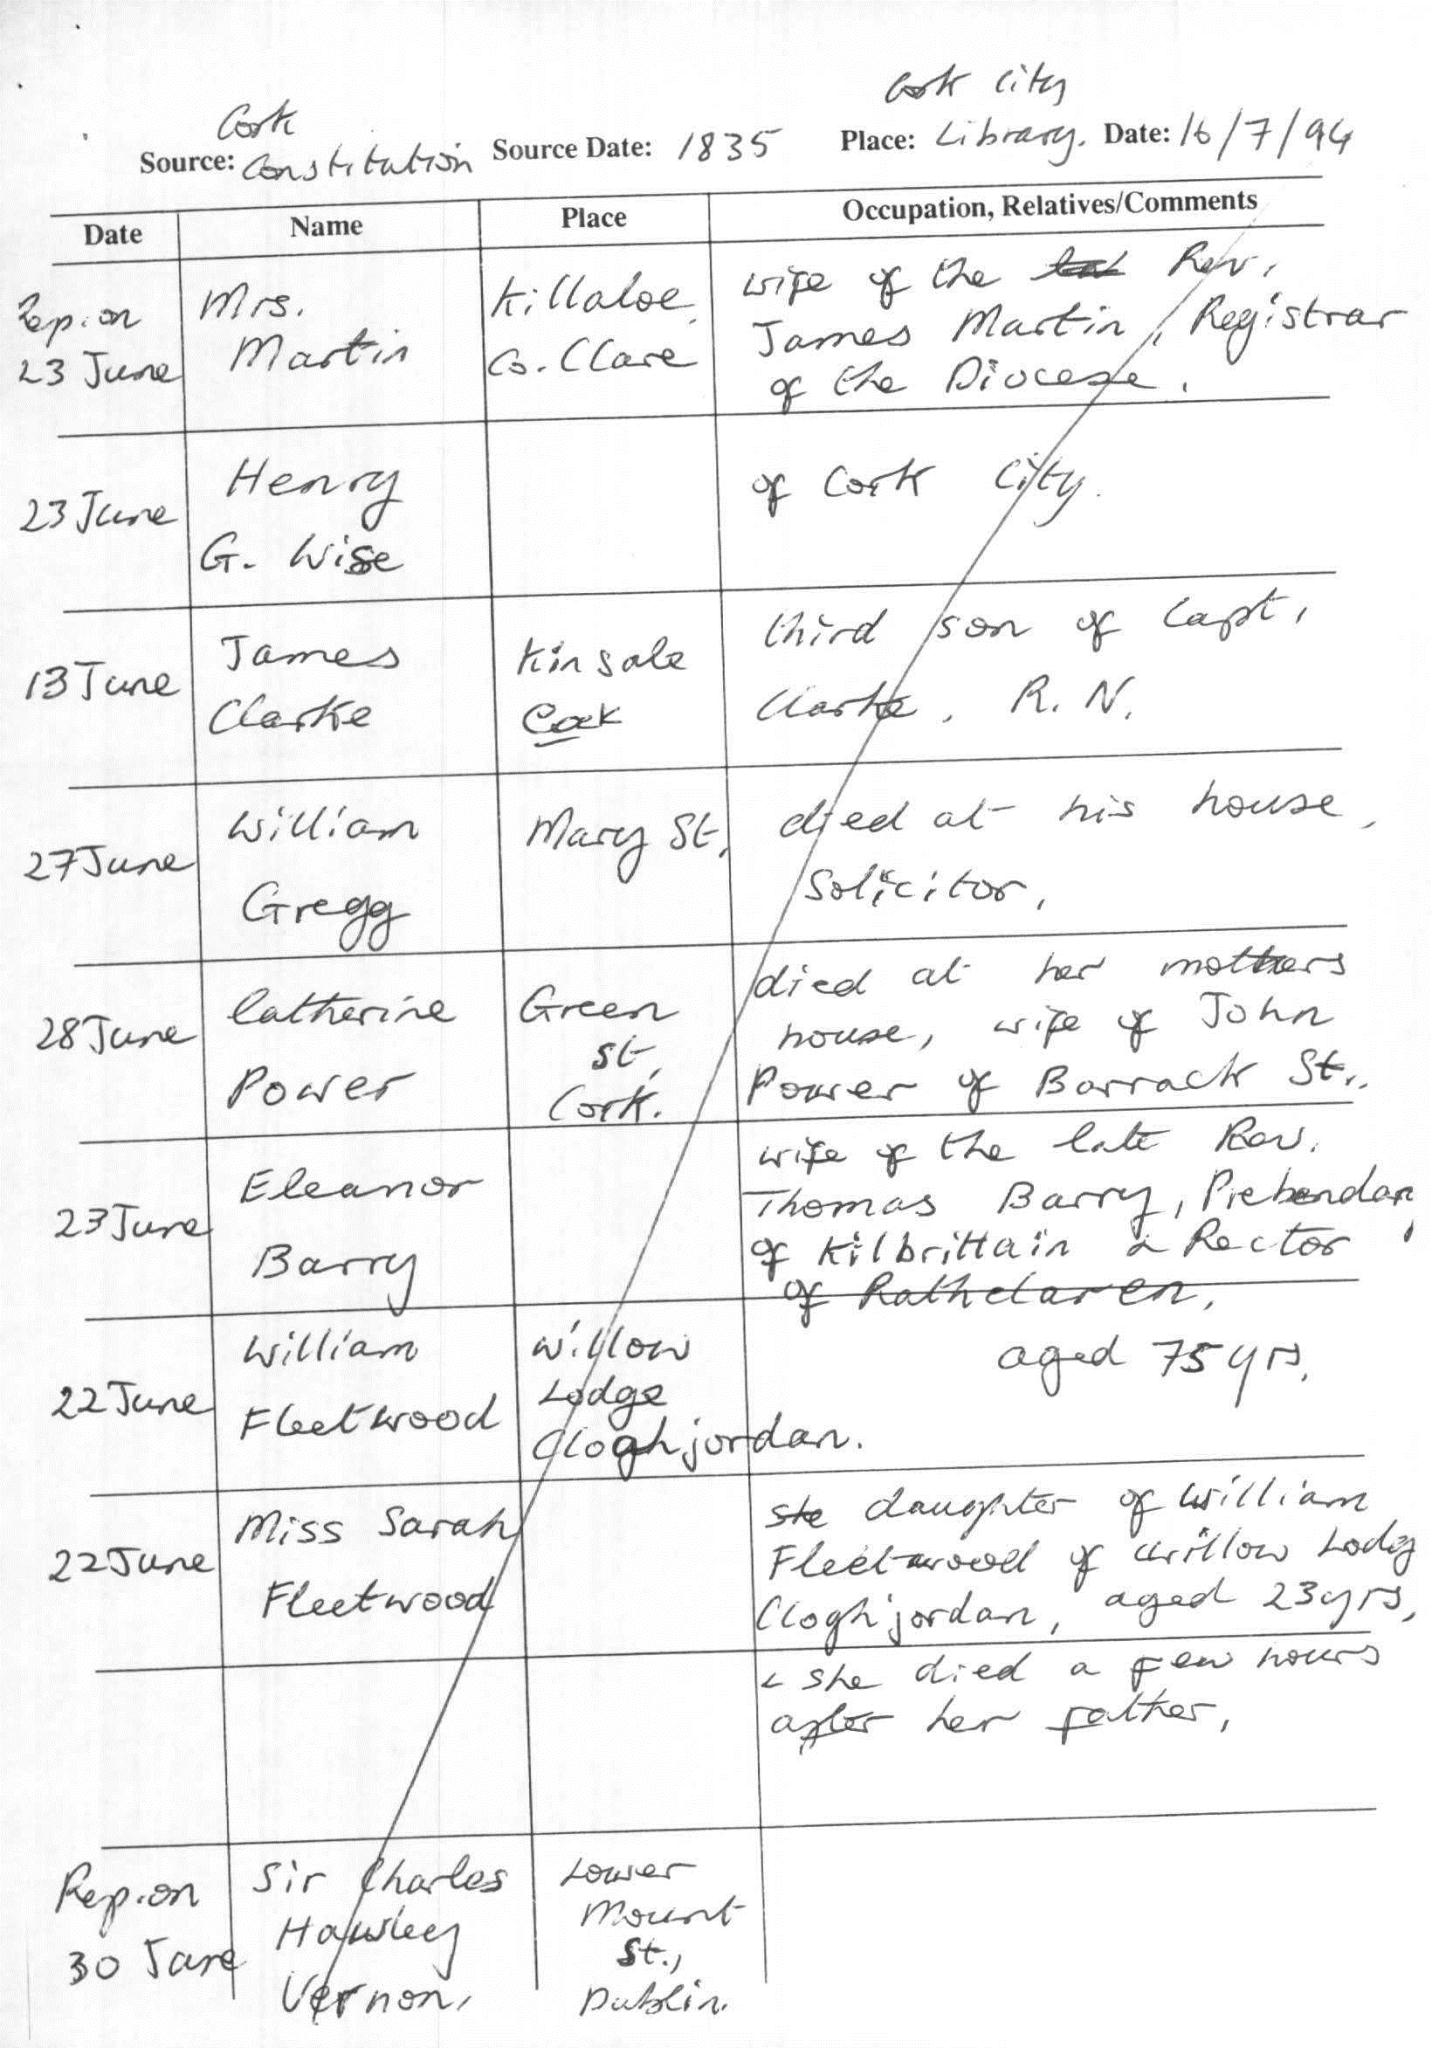 C:\Users\Virginia Rundle\Documents\Ancestry\Wise Files\Henry George Wise of St Mary's Shandon, Cork\IRE_TCA_BOX_8_CC_1835_JAN-AUG_00000001_00000026.jpg